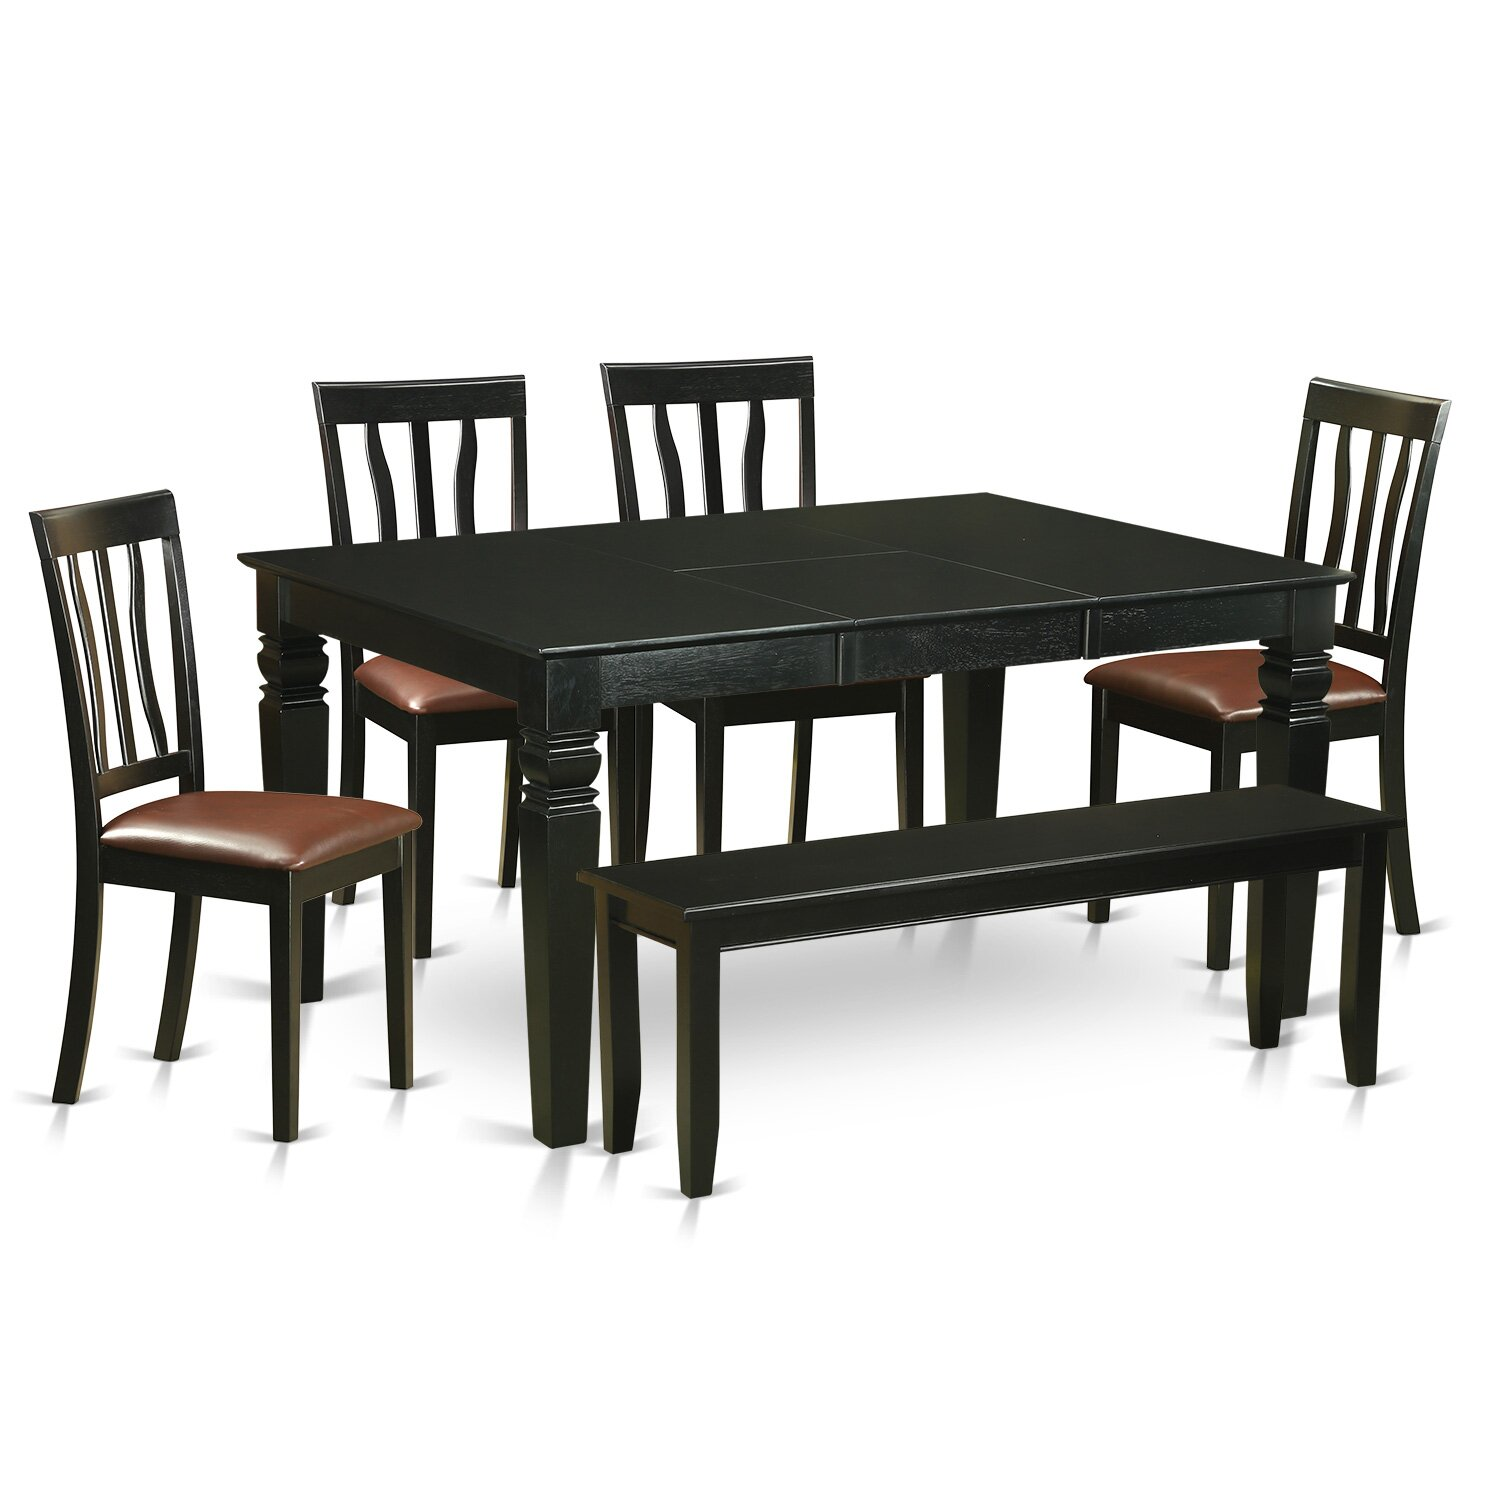 Wooden importers weston 6 piece dining set wayfair for Table and bench set